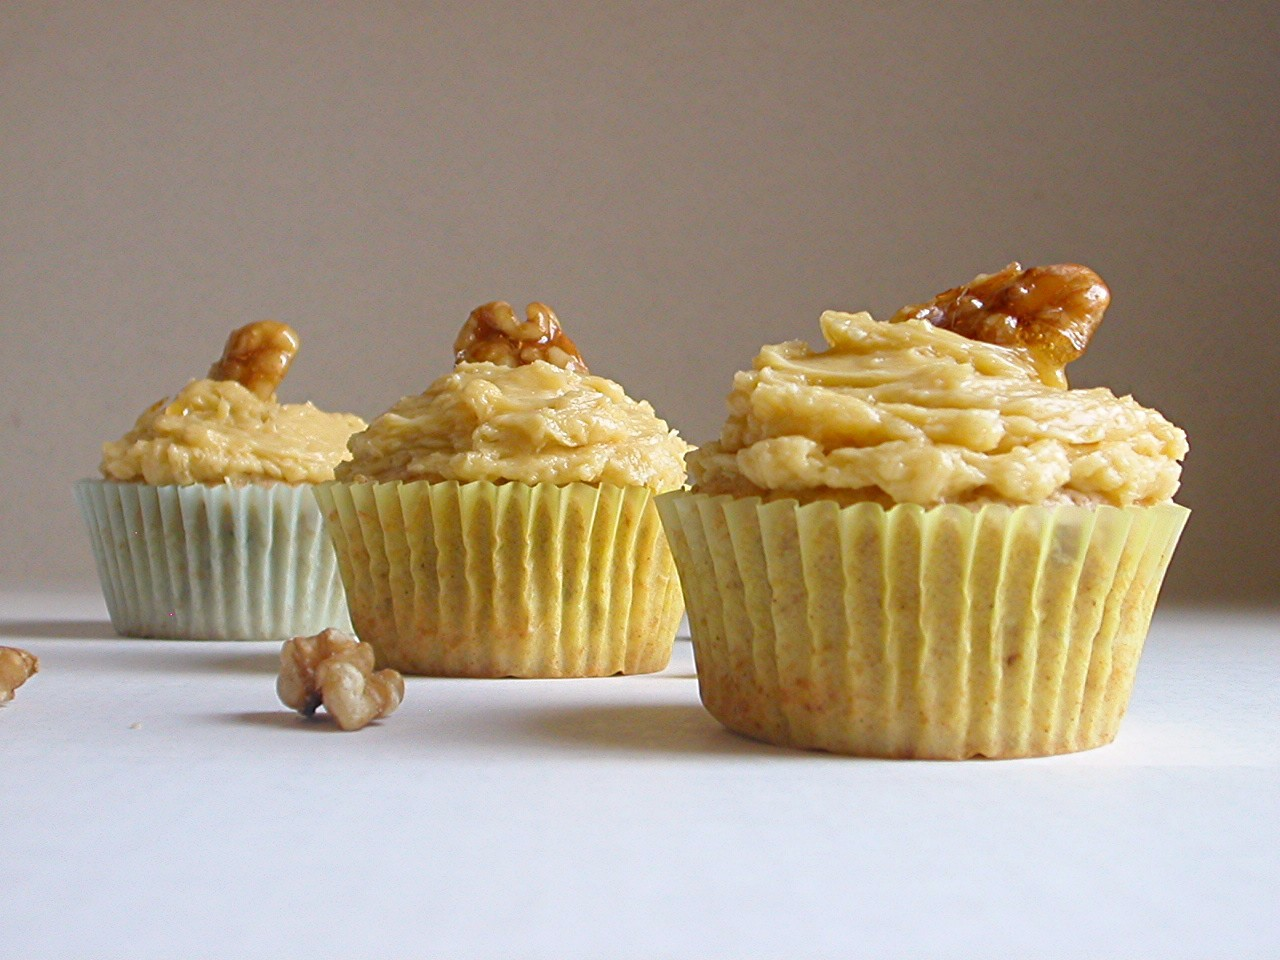 Maple-Walnut Cupcakes (from Martha Stewart's Baking Handbook )